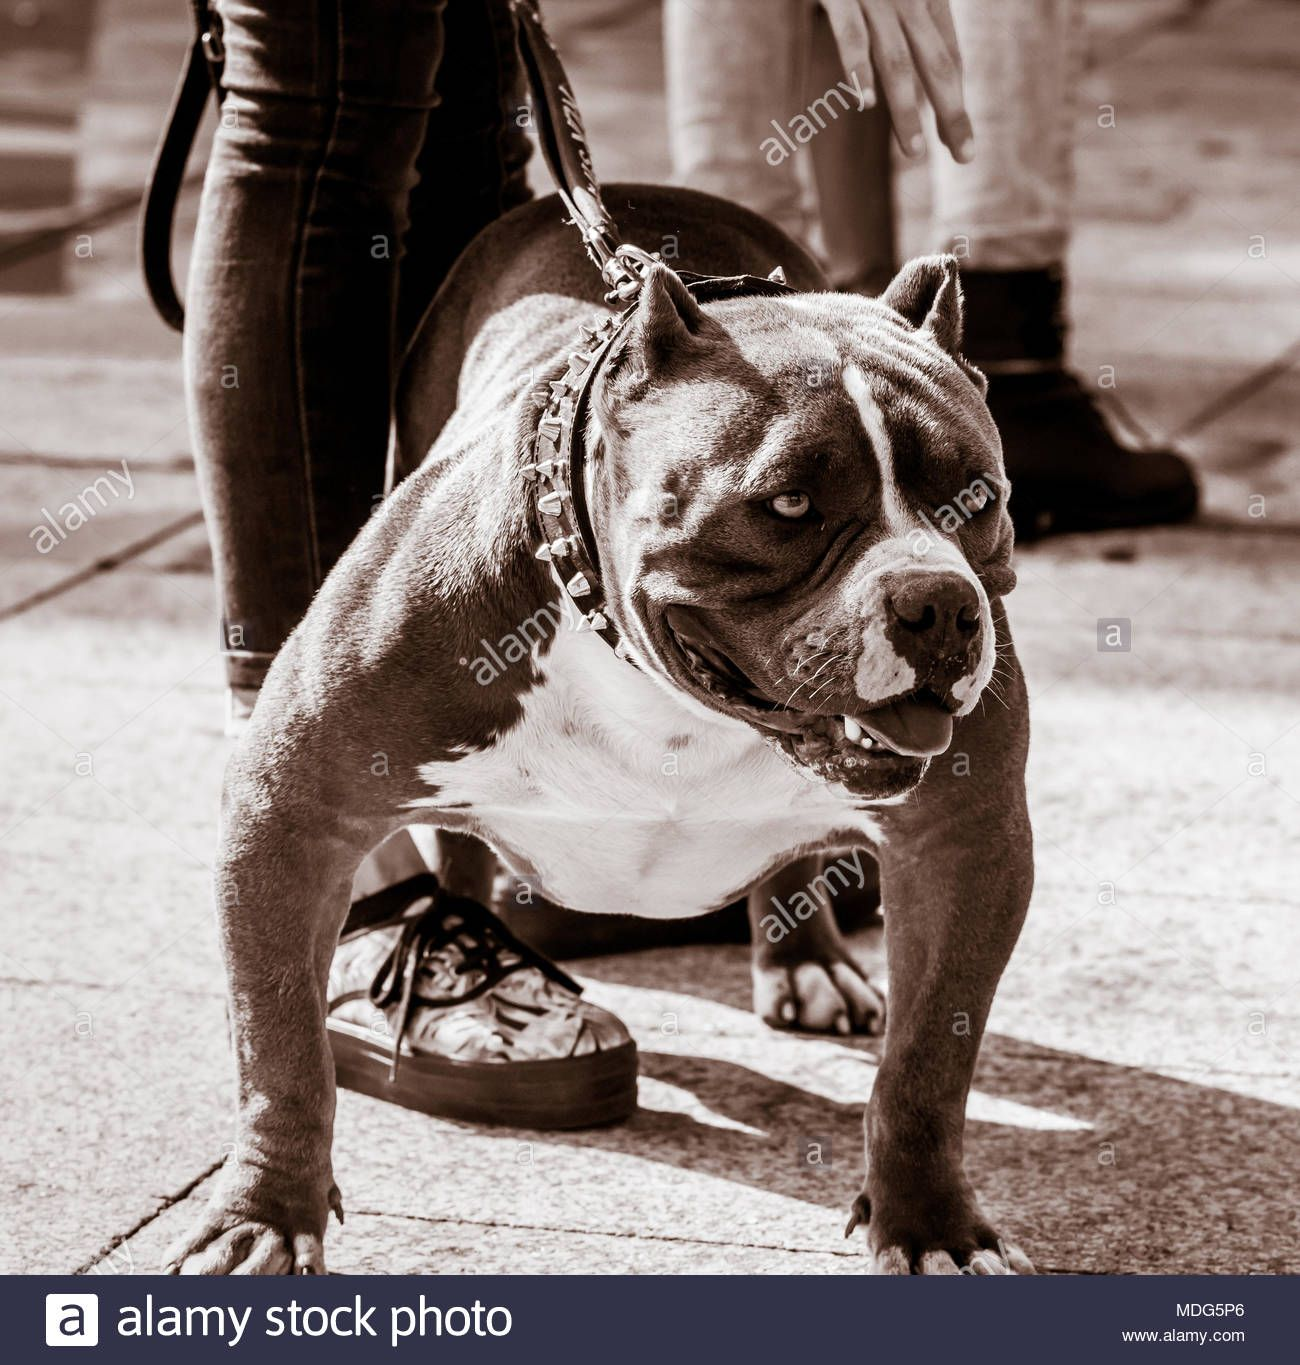 Bullypit Bully Pitbull Stockfotos Bullypit Bully Pitbull American